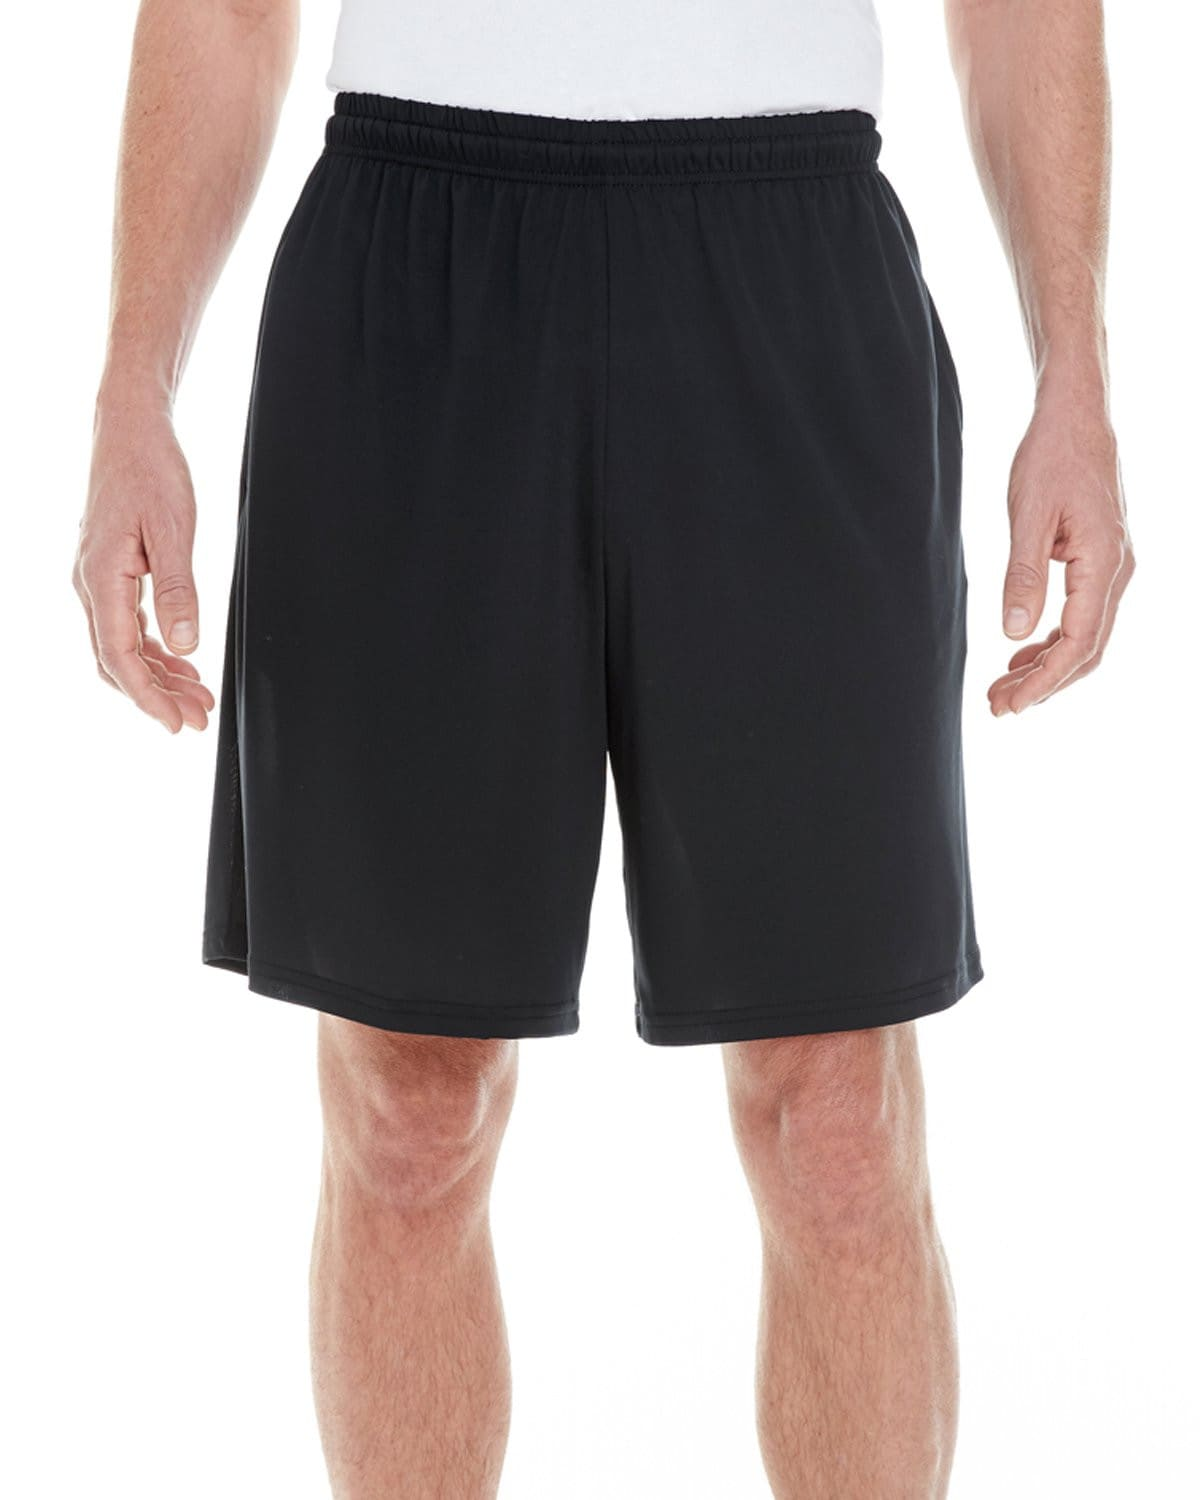 g46s-adult-performance-core-shorts-Small-BLACK-Oasispromos